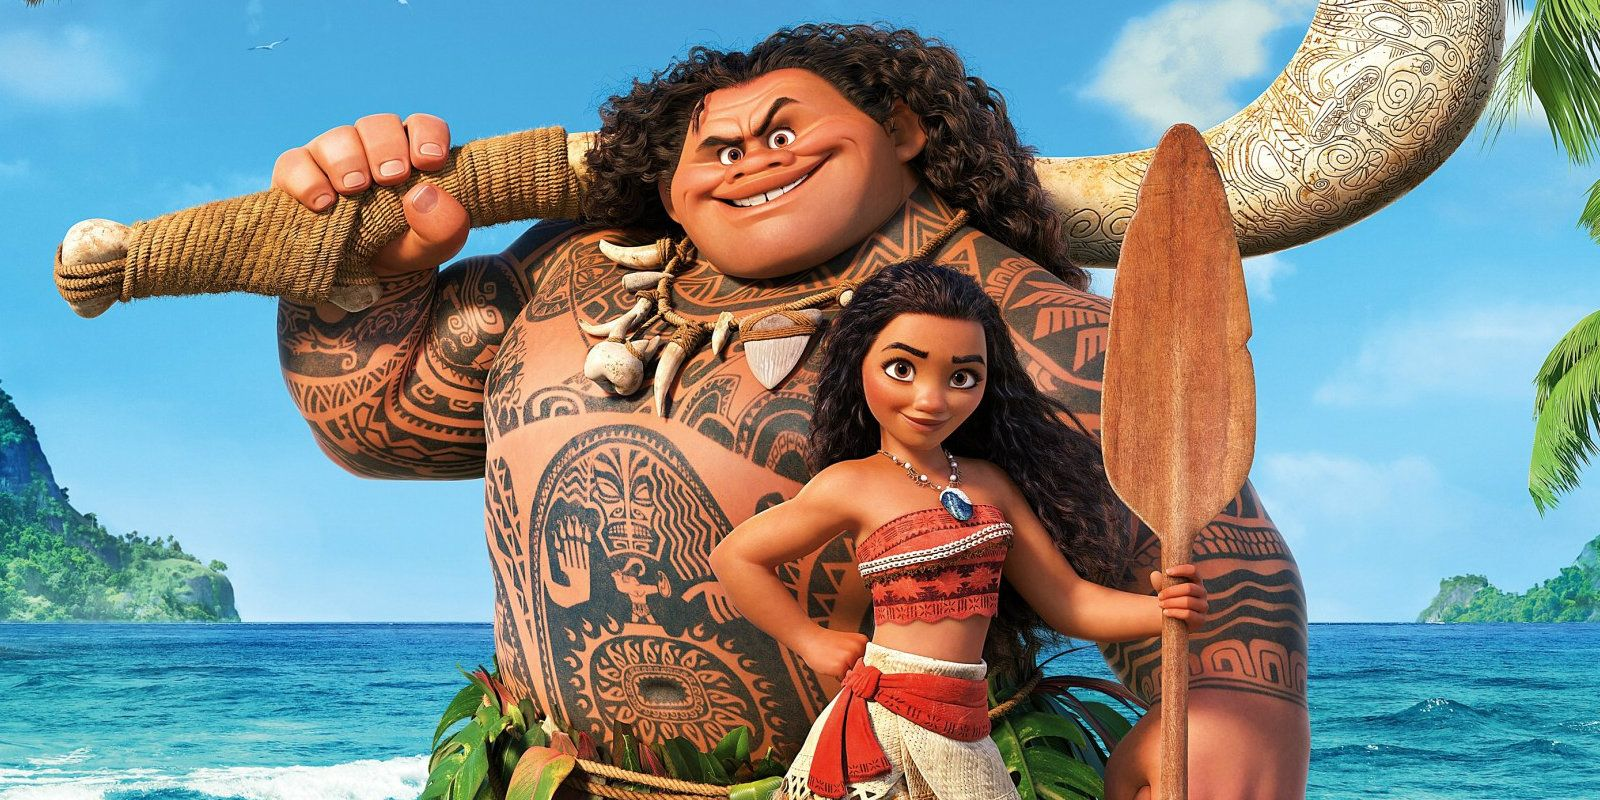 When When Moana 2 Be Released on Disney?